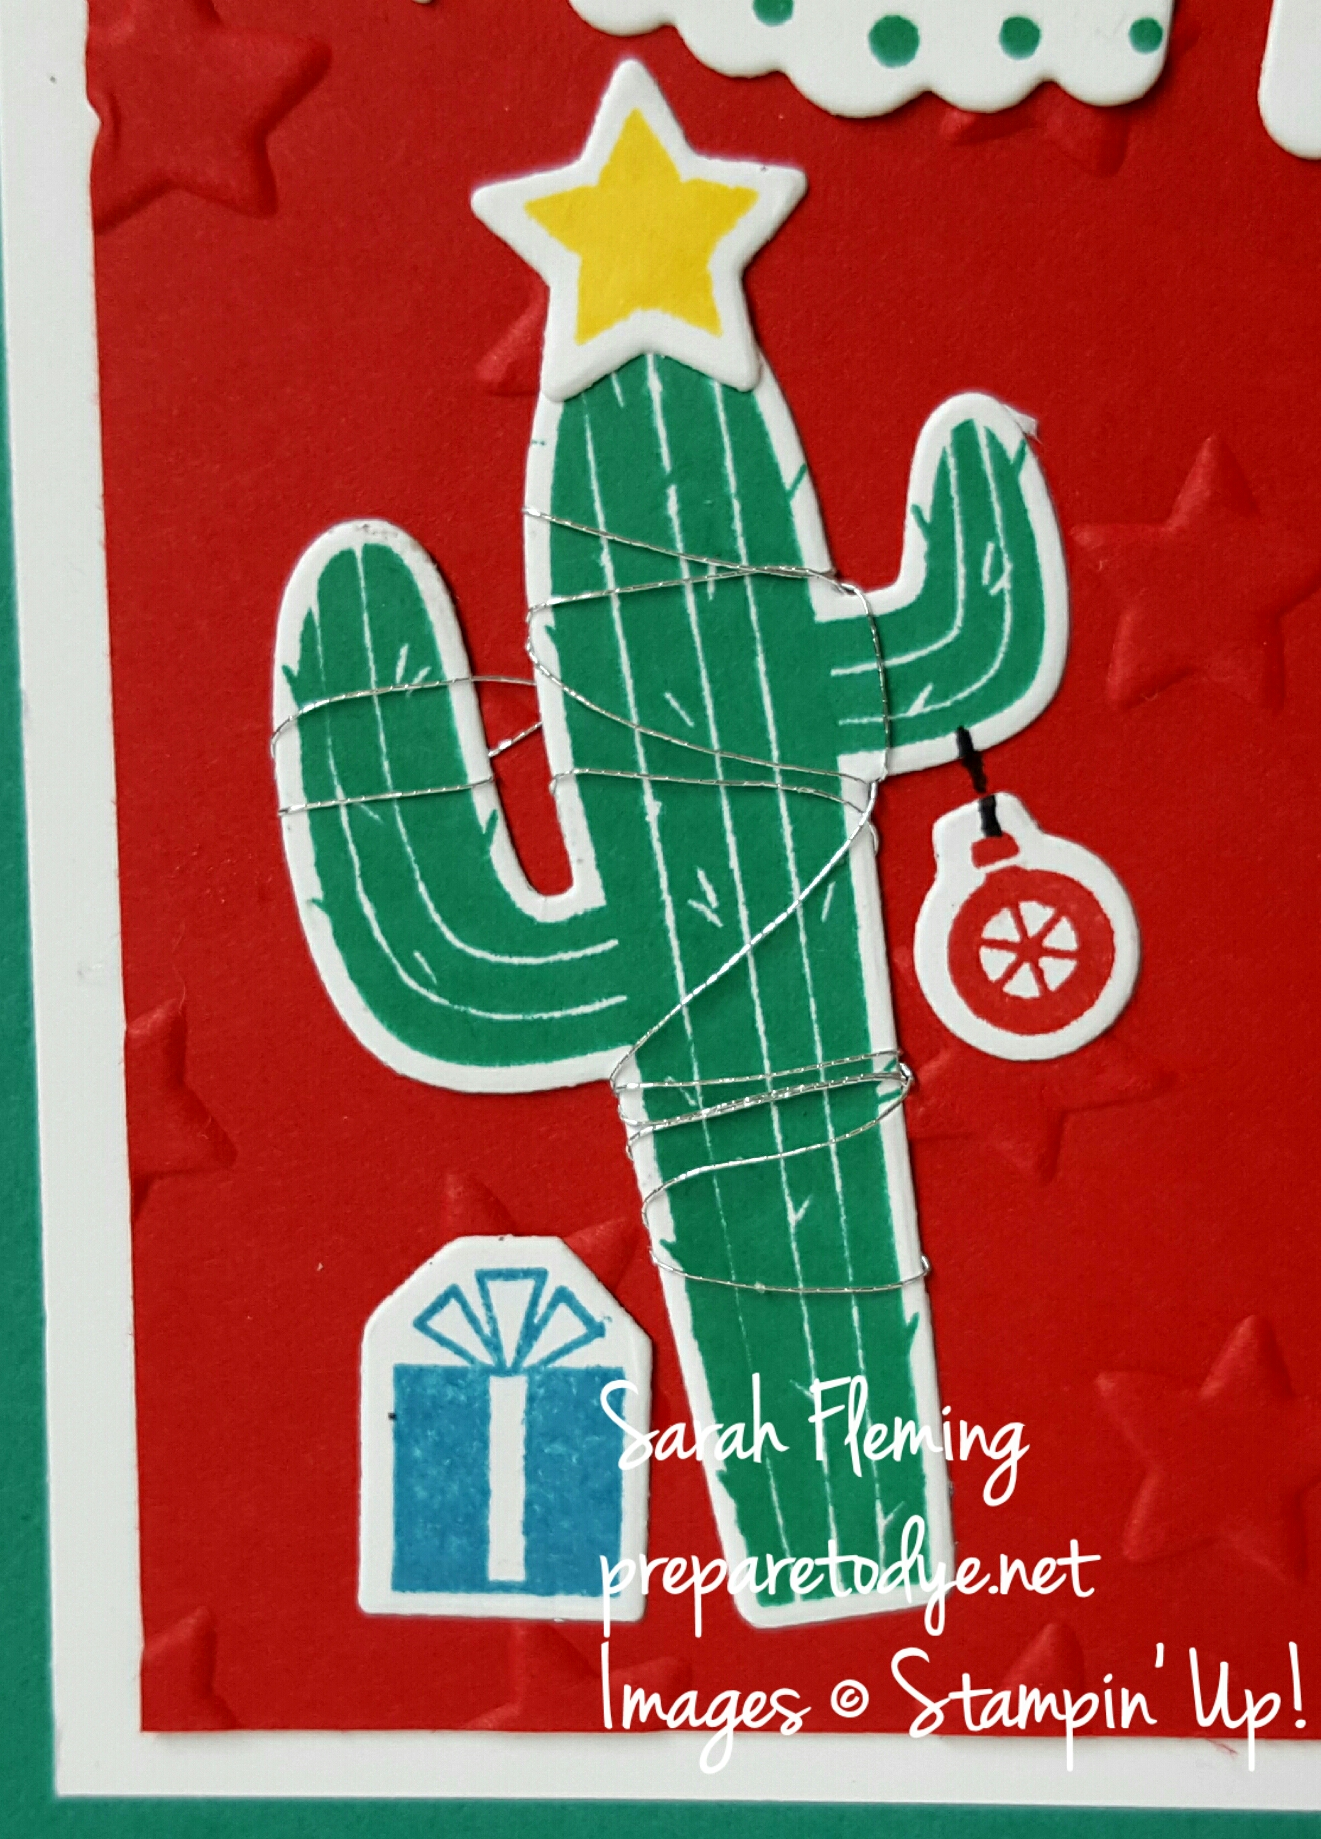 Use Stampin' Up!'s Birthday Fiesta bundle to make adorable Christmas cards! Birthday Fiesta, Fiesta Time framelits, Oh What Fun, Peaceful Pines, Perfect Pines framelits - Sarah Fleming - Prepare to Dye